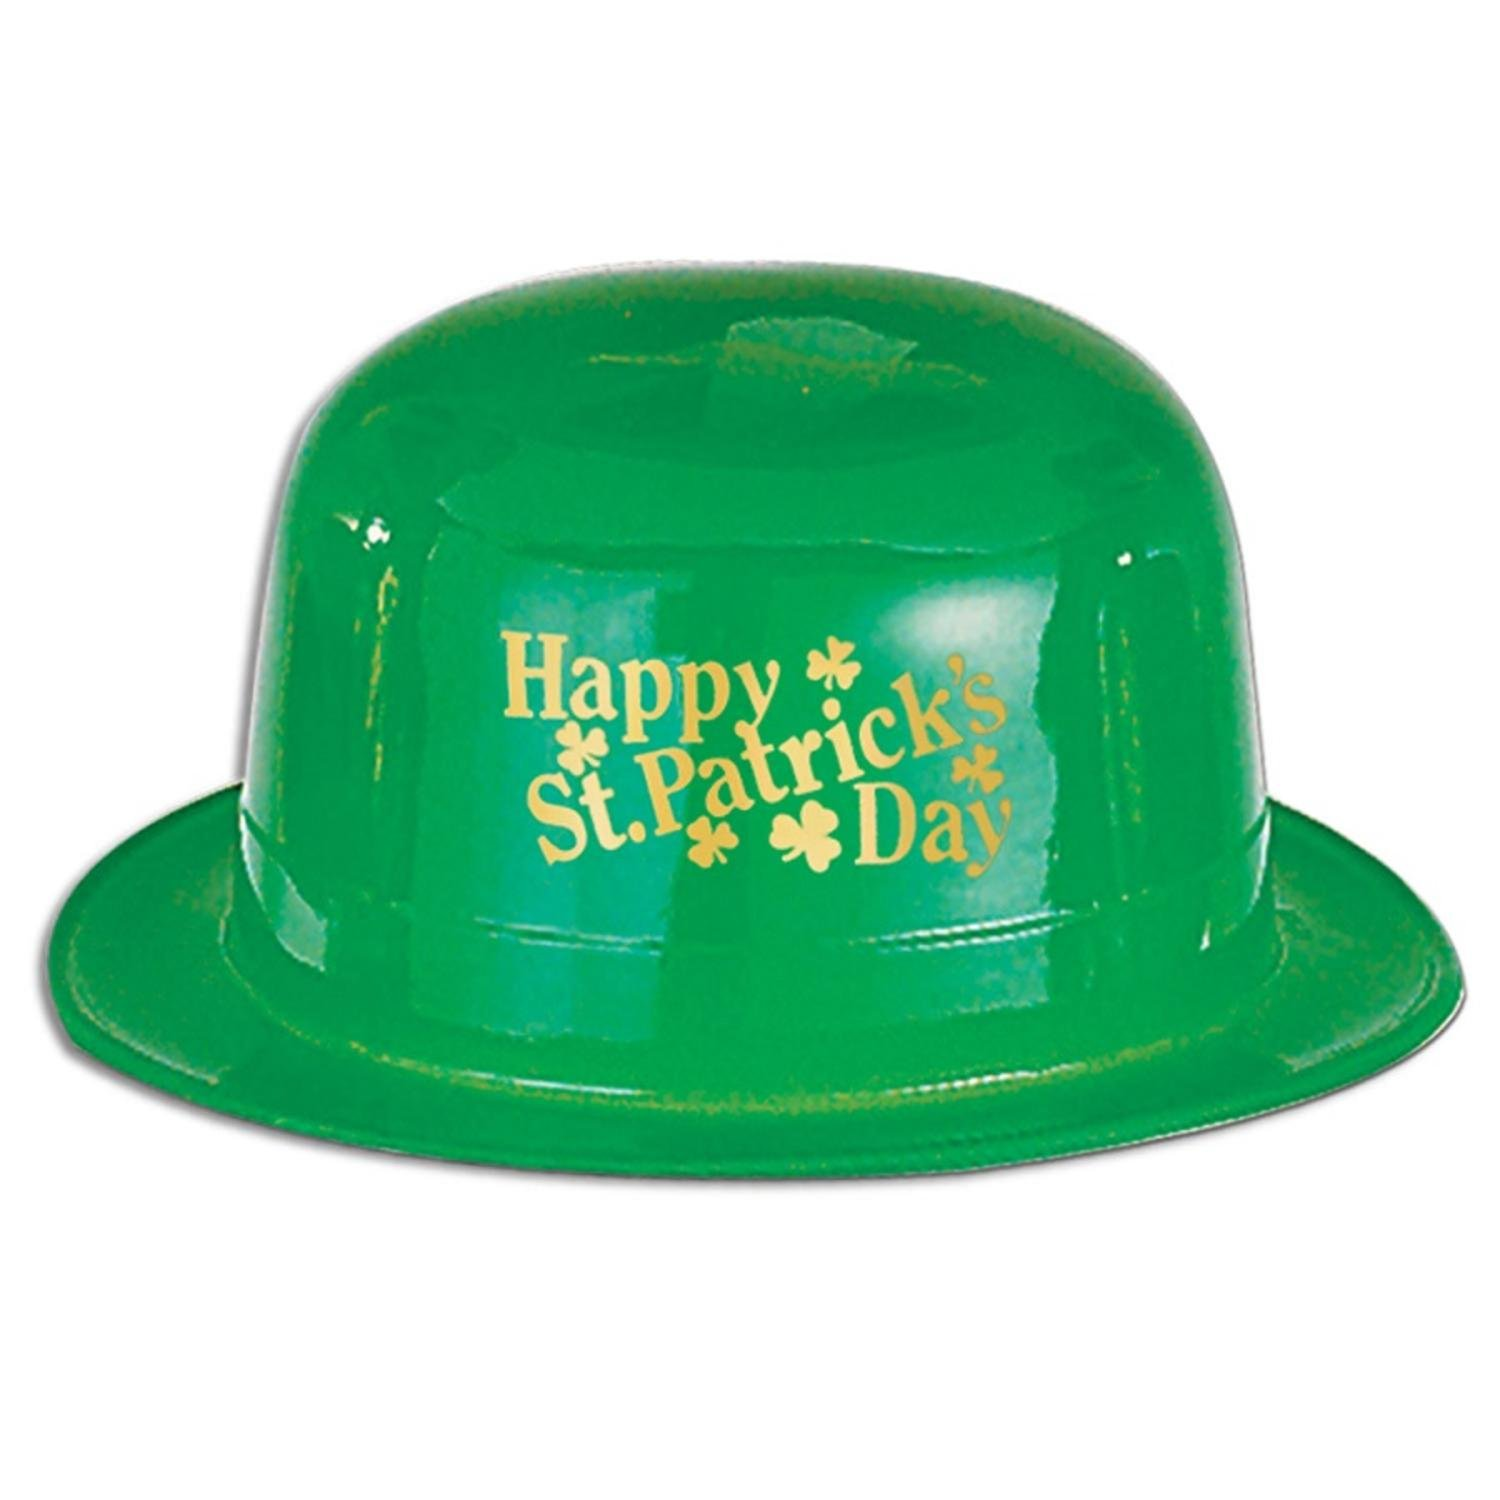 Pack of 48 Happy St. Patrick's Day Green Derby Hat Party Accessories by Party Central